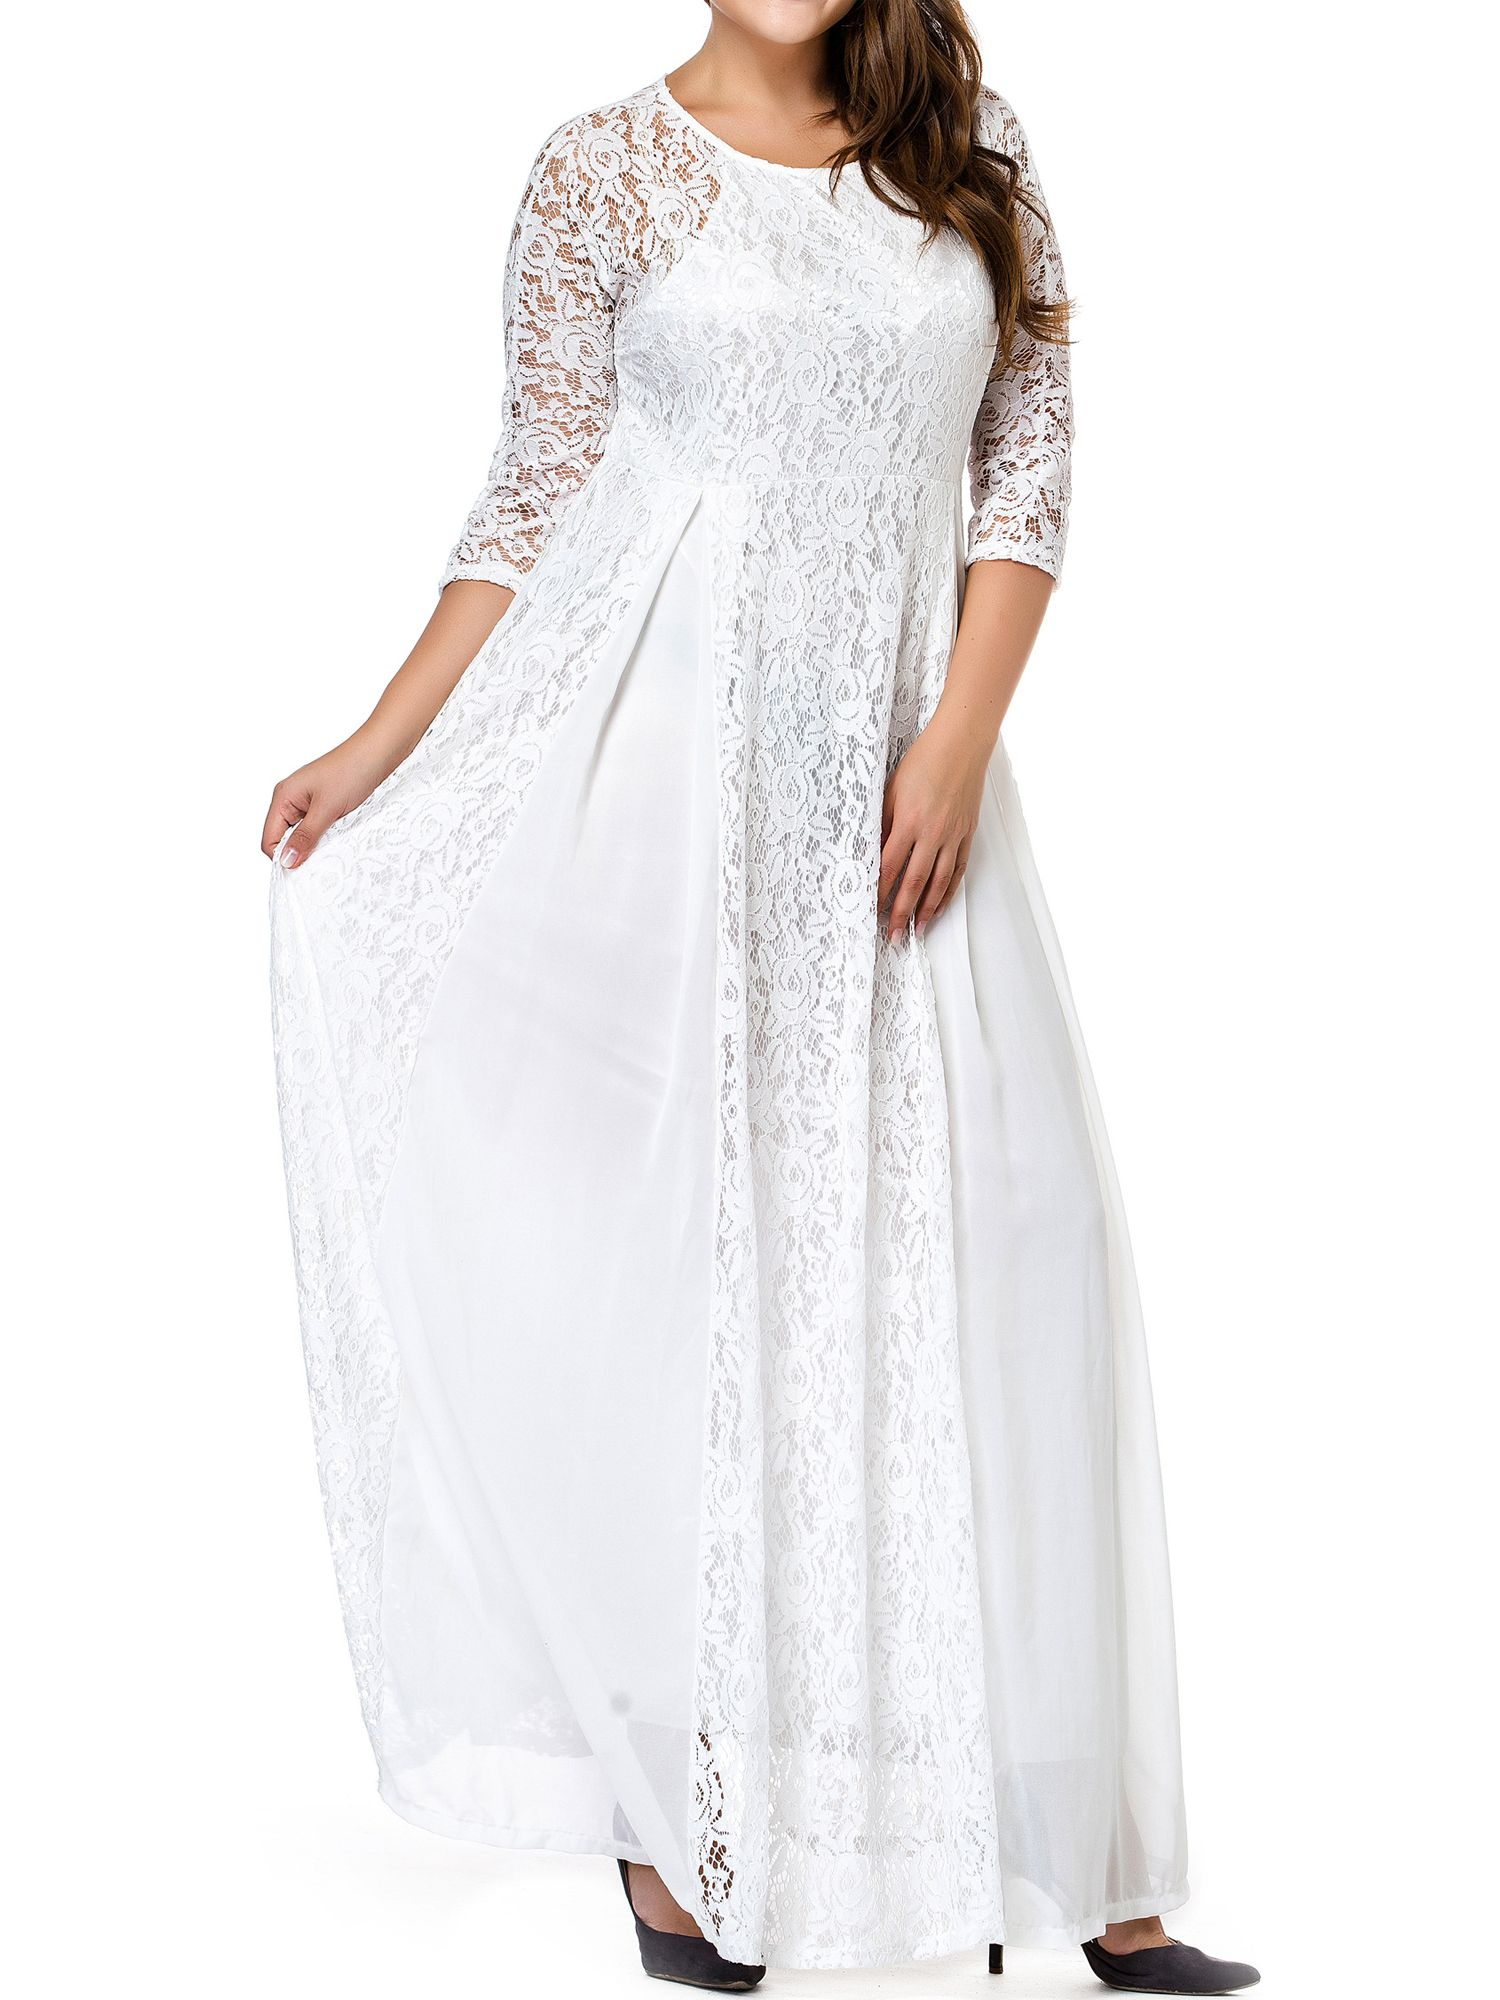 9ac83cec053 ESPRLIA Women s Plus Size Floral Lace 3 4 Sleeve Wedding Maxi Dress ...